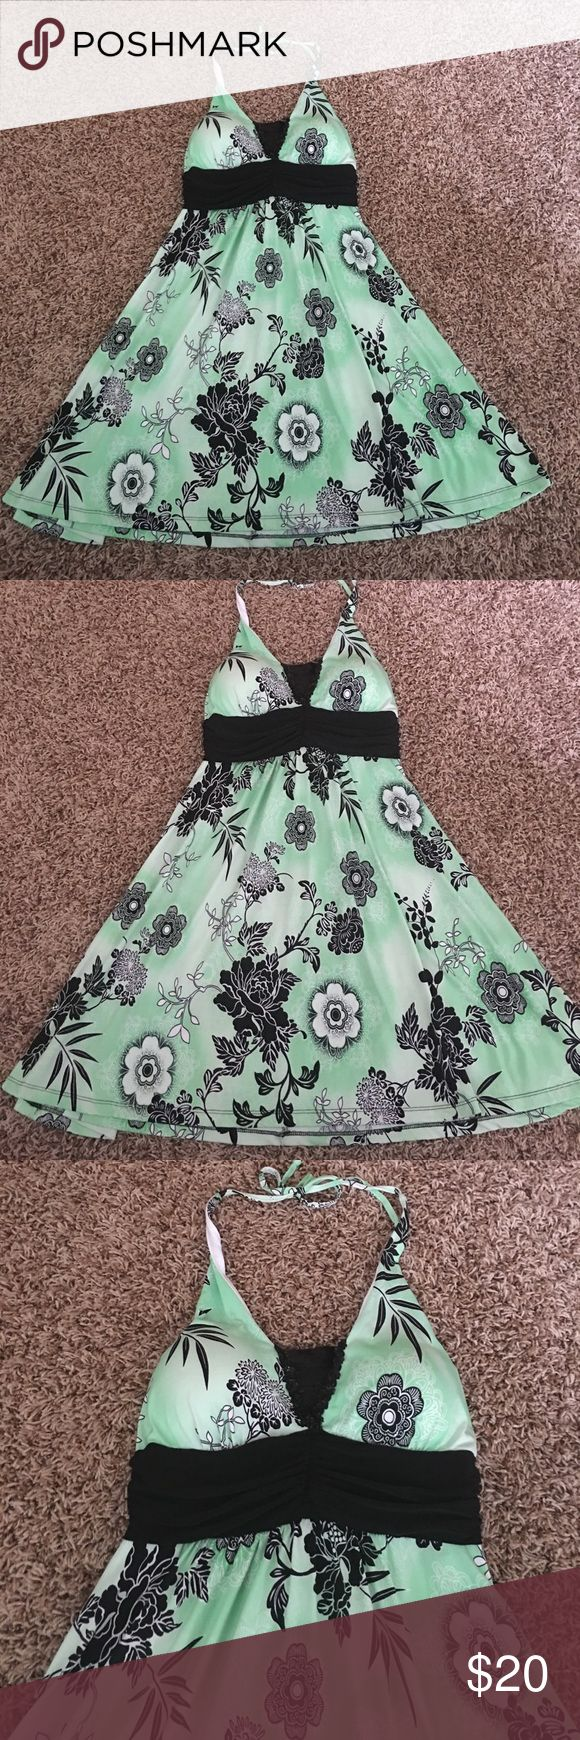 DONUTZ INC DRESS In excellent condition. Looks brand new. 92% polyester 8% spandex. donutz inc Dresses